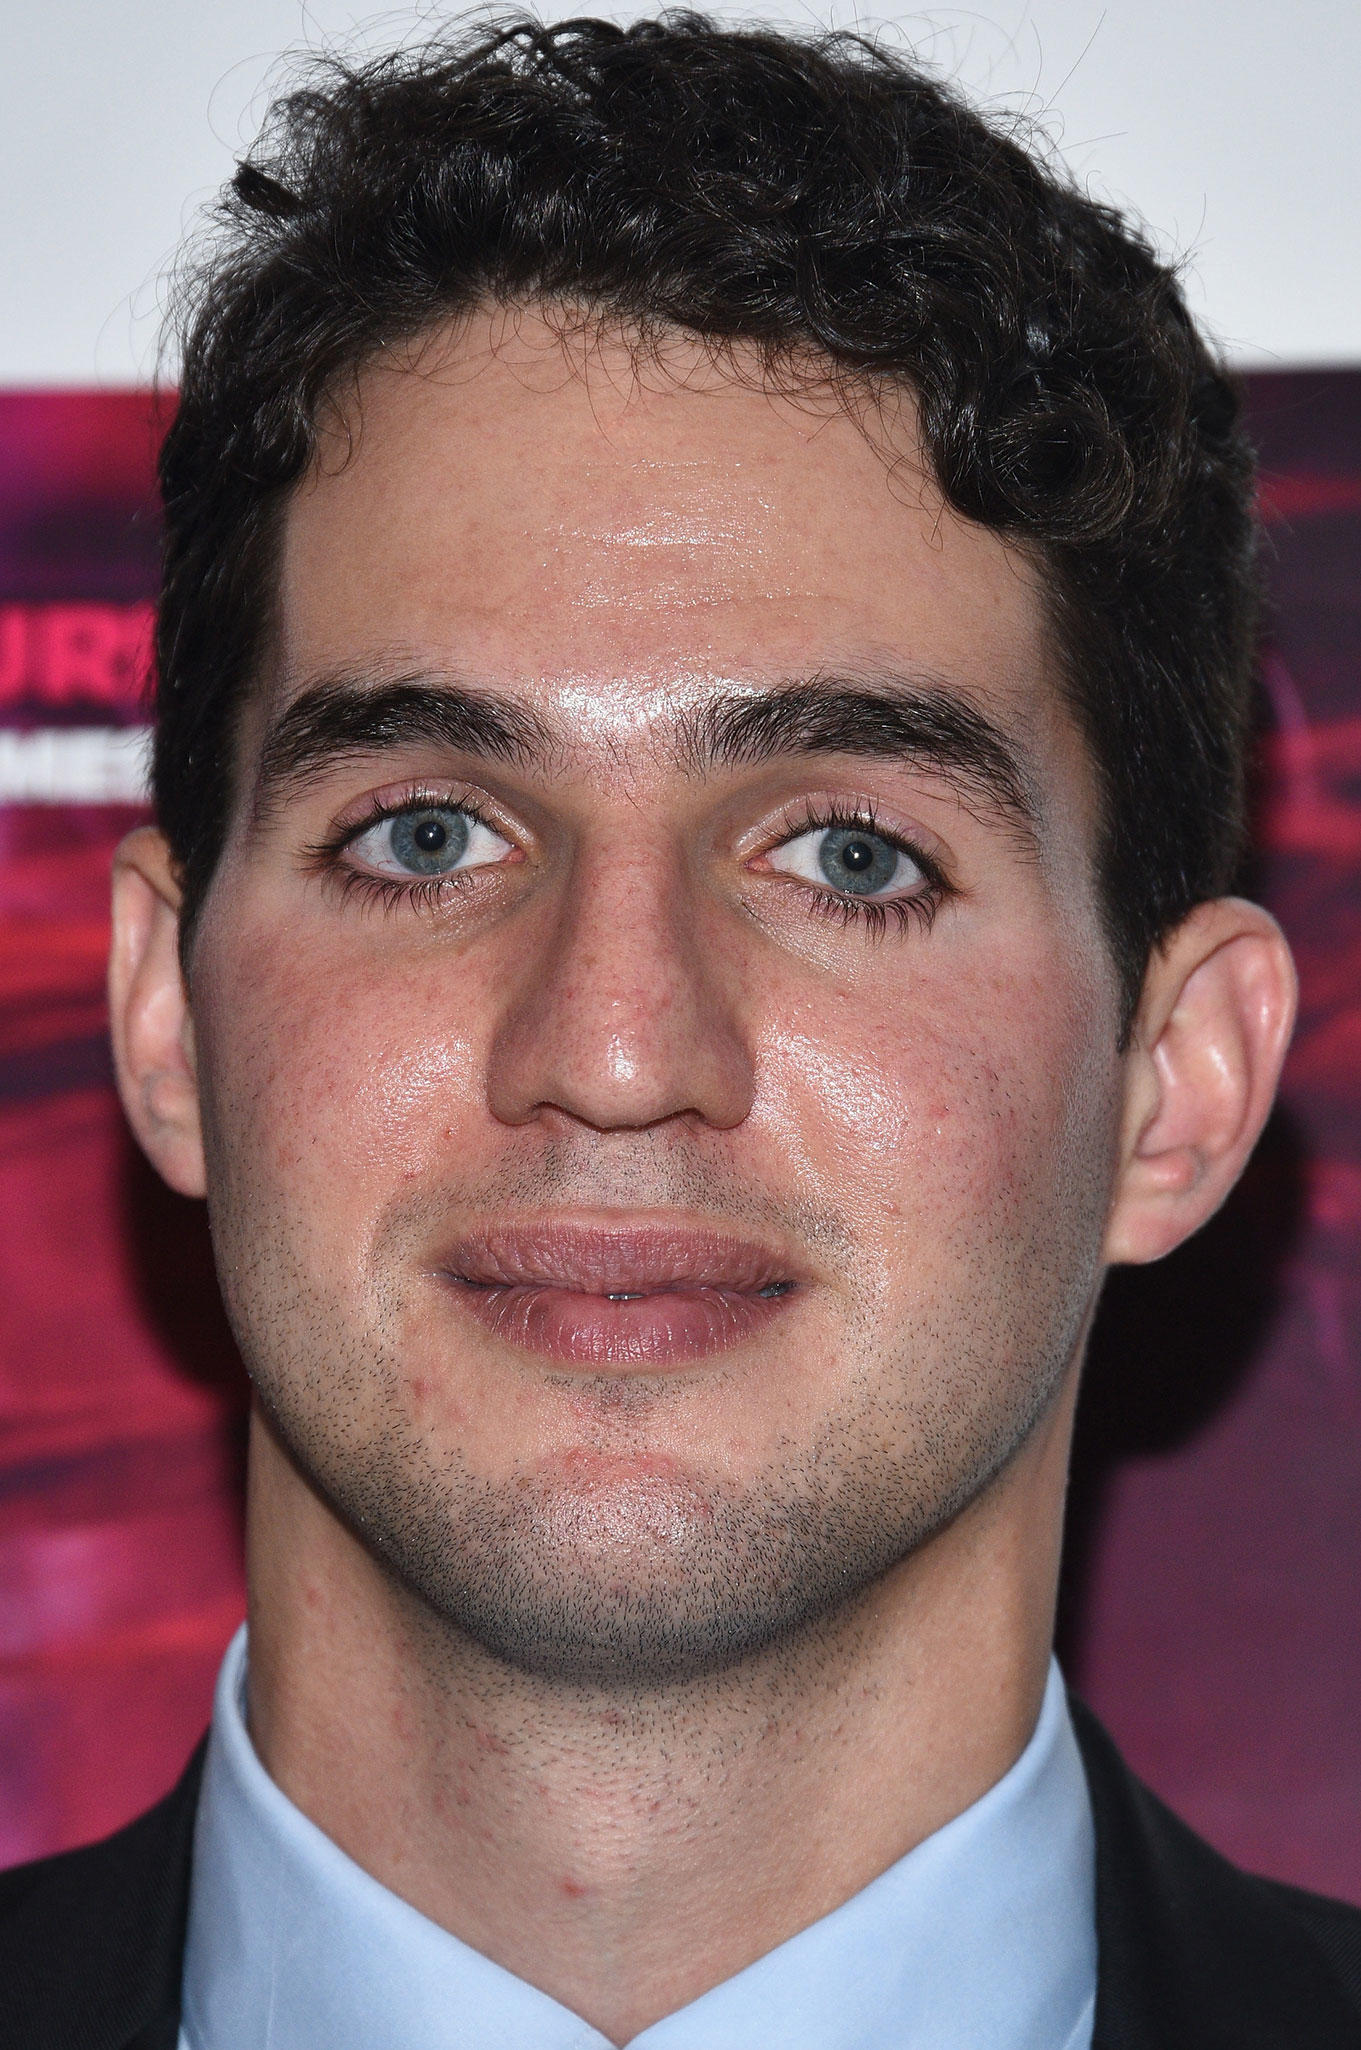 Ben Safdie at the NY premiere on